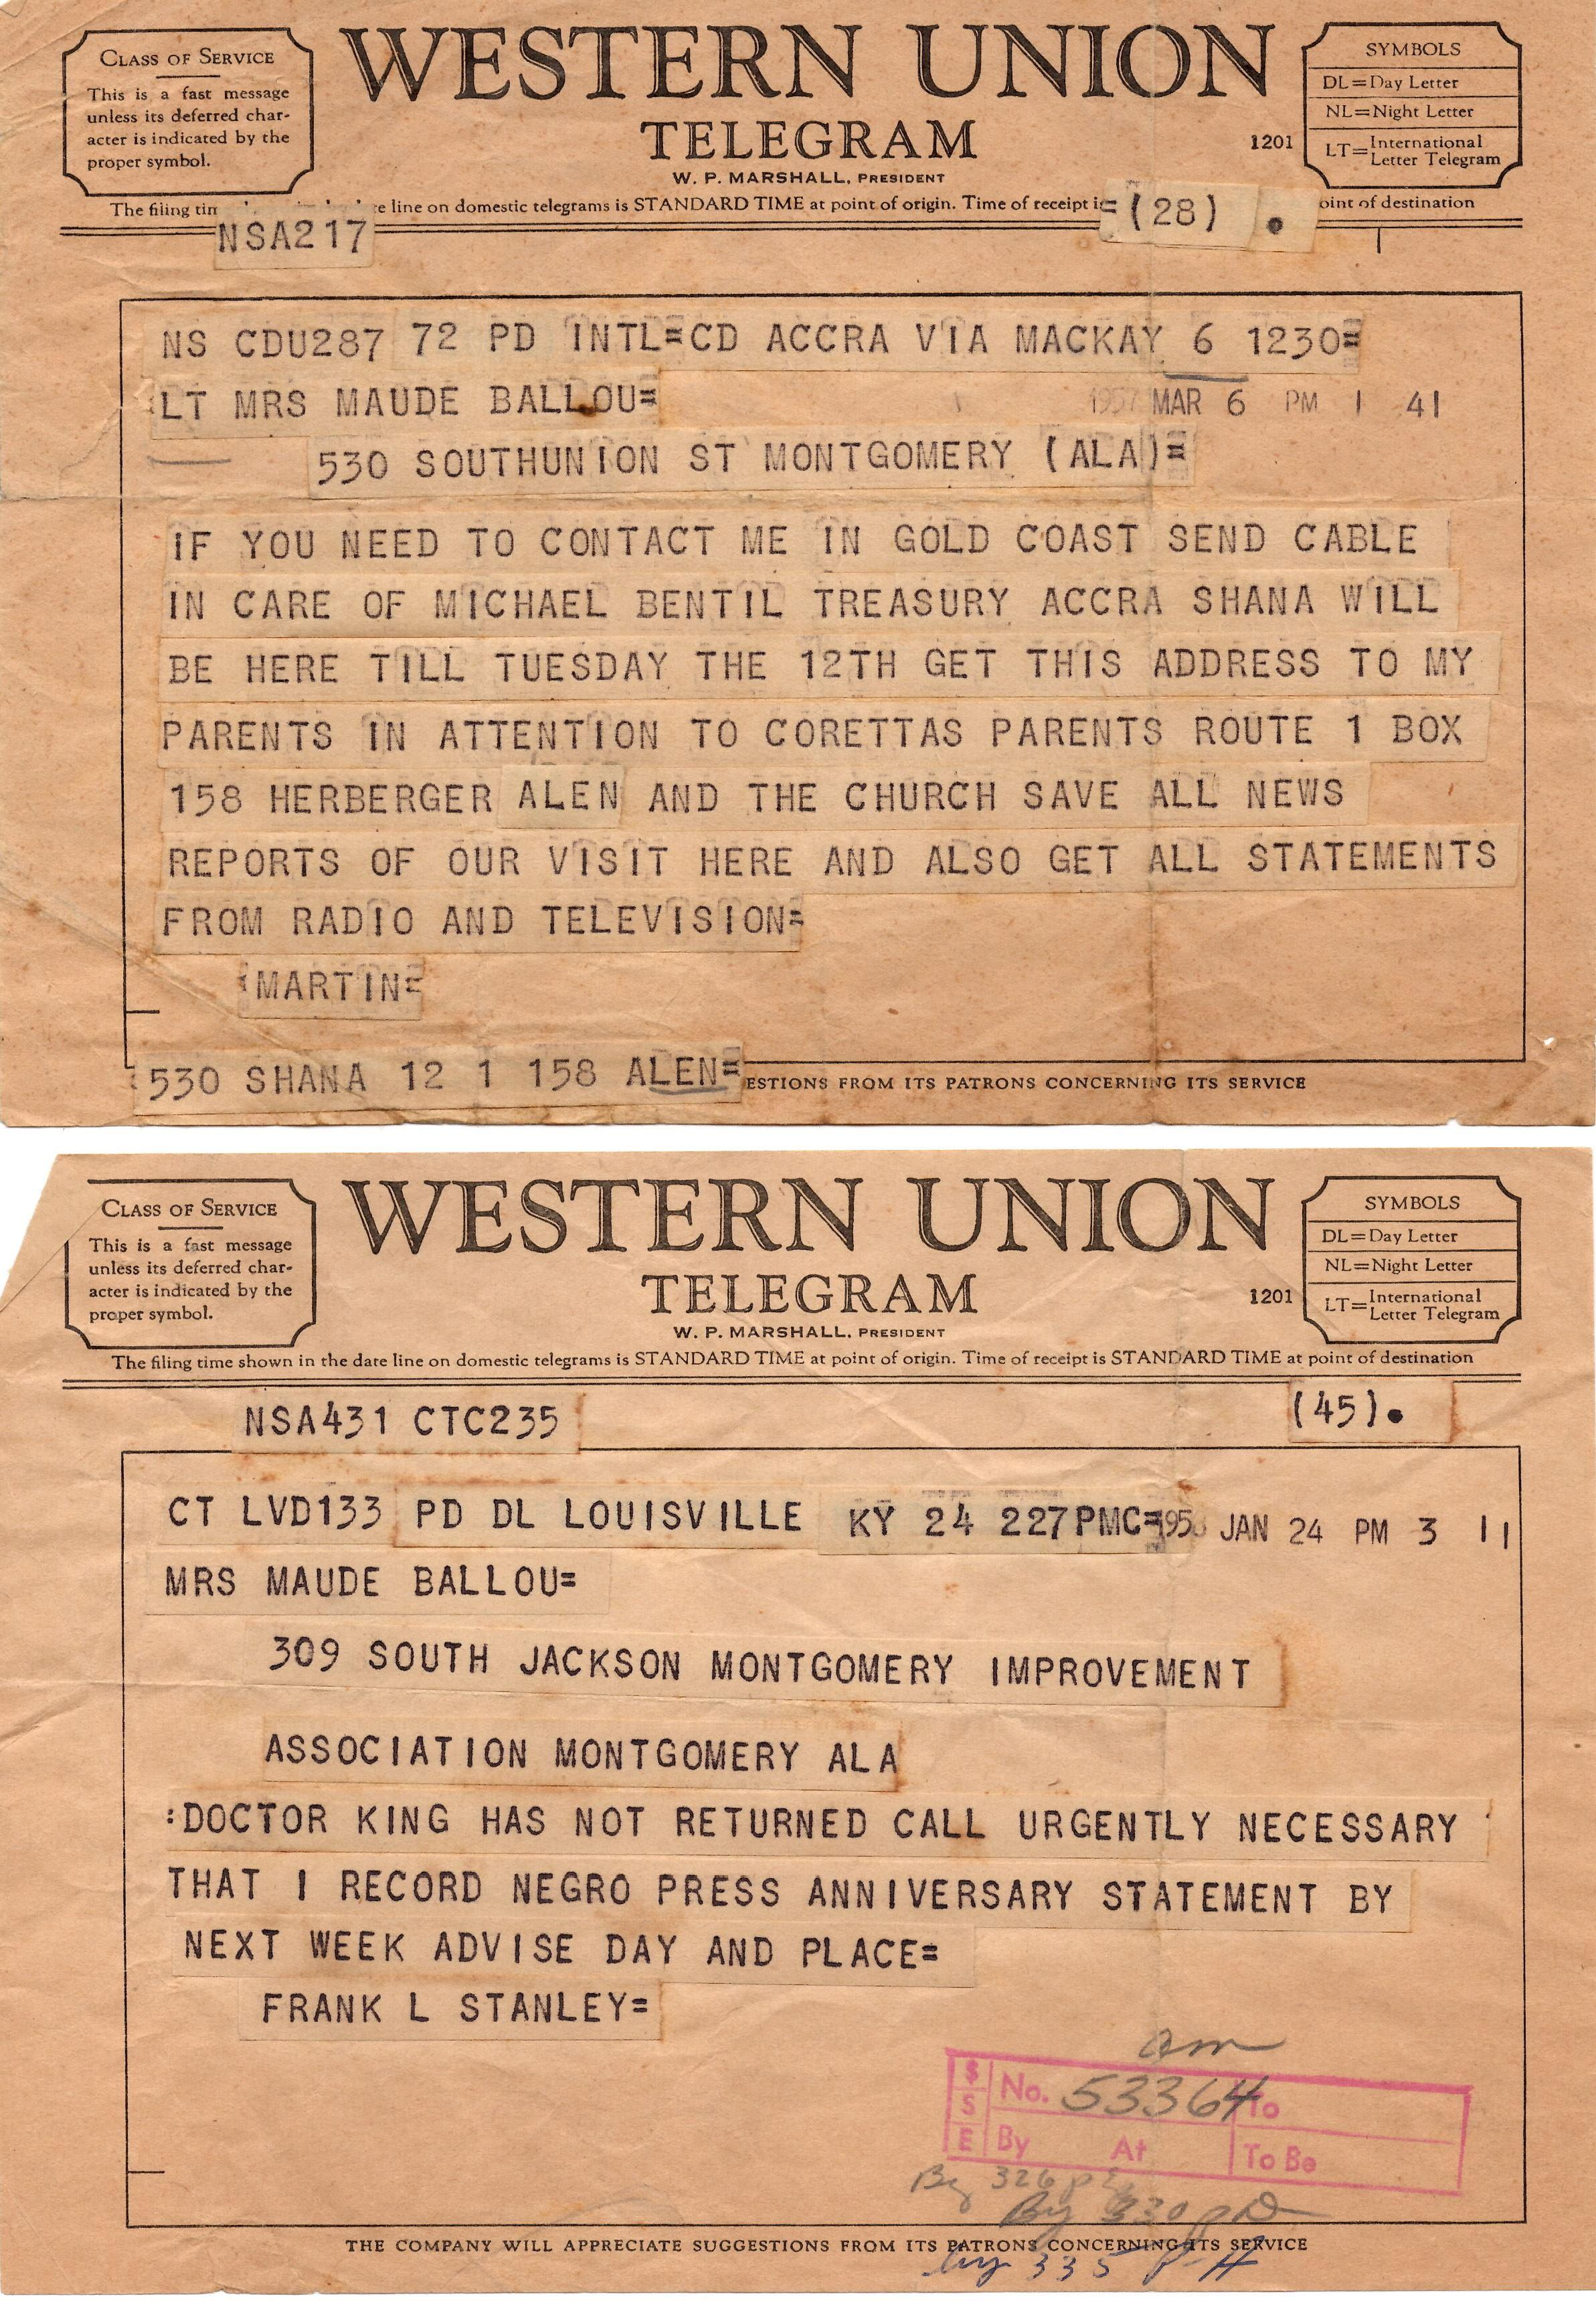 Martin Luther King Archive of Letters and Documents Related to Maude Ballou